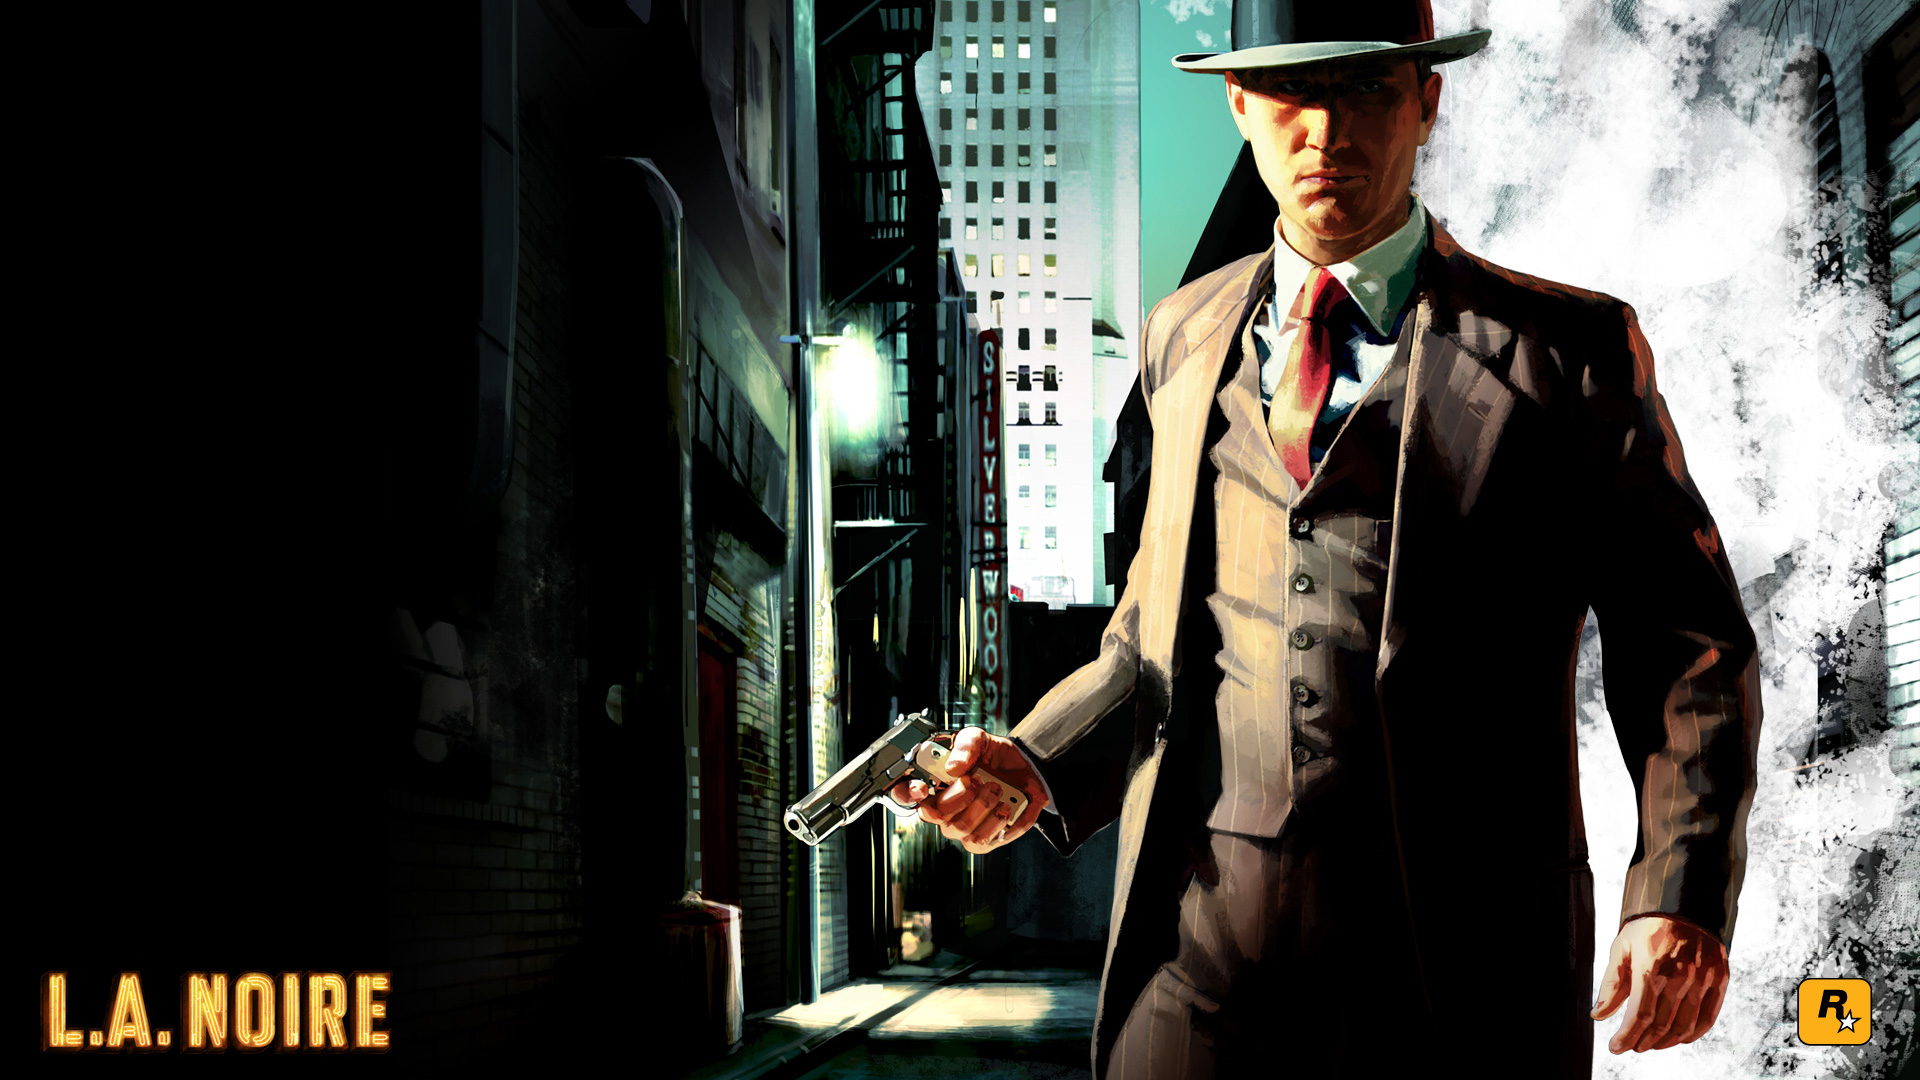 L.A. Noire Wallpaper in 1920x1080